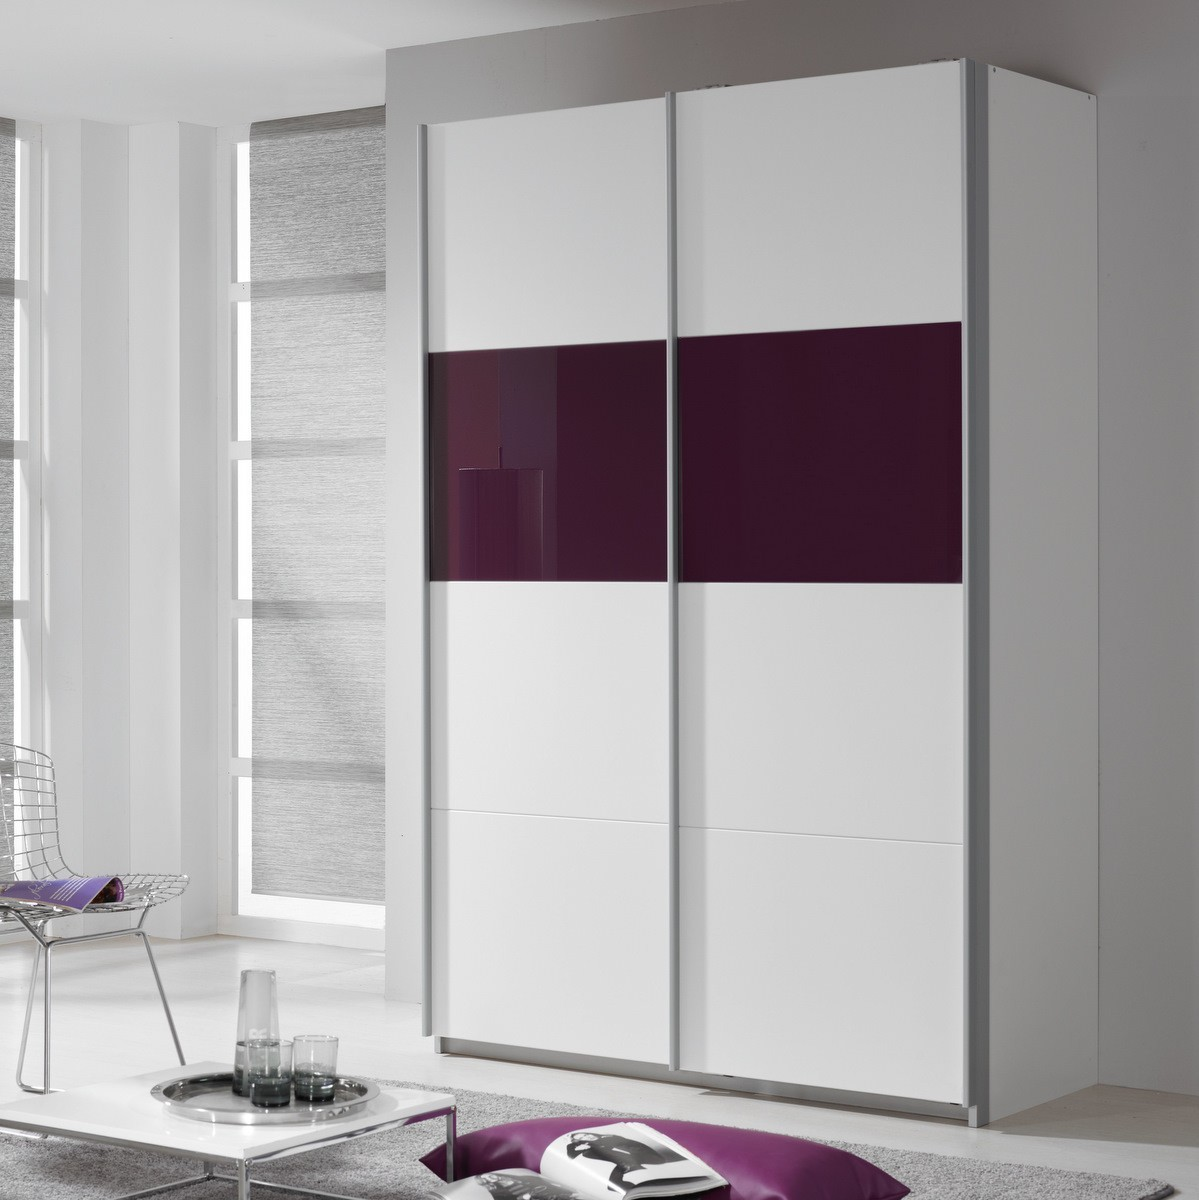 schwebet renschrank quadra in wei glas lila 136cm ebay. Black Bedroom Furniture Sets. Home Design Ideas